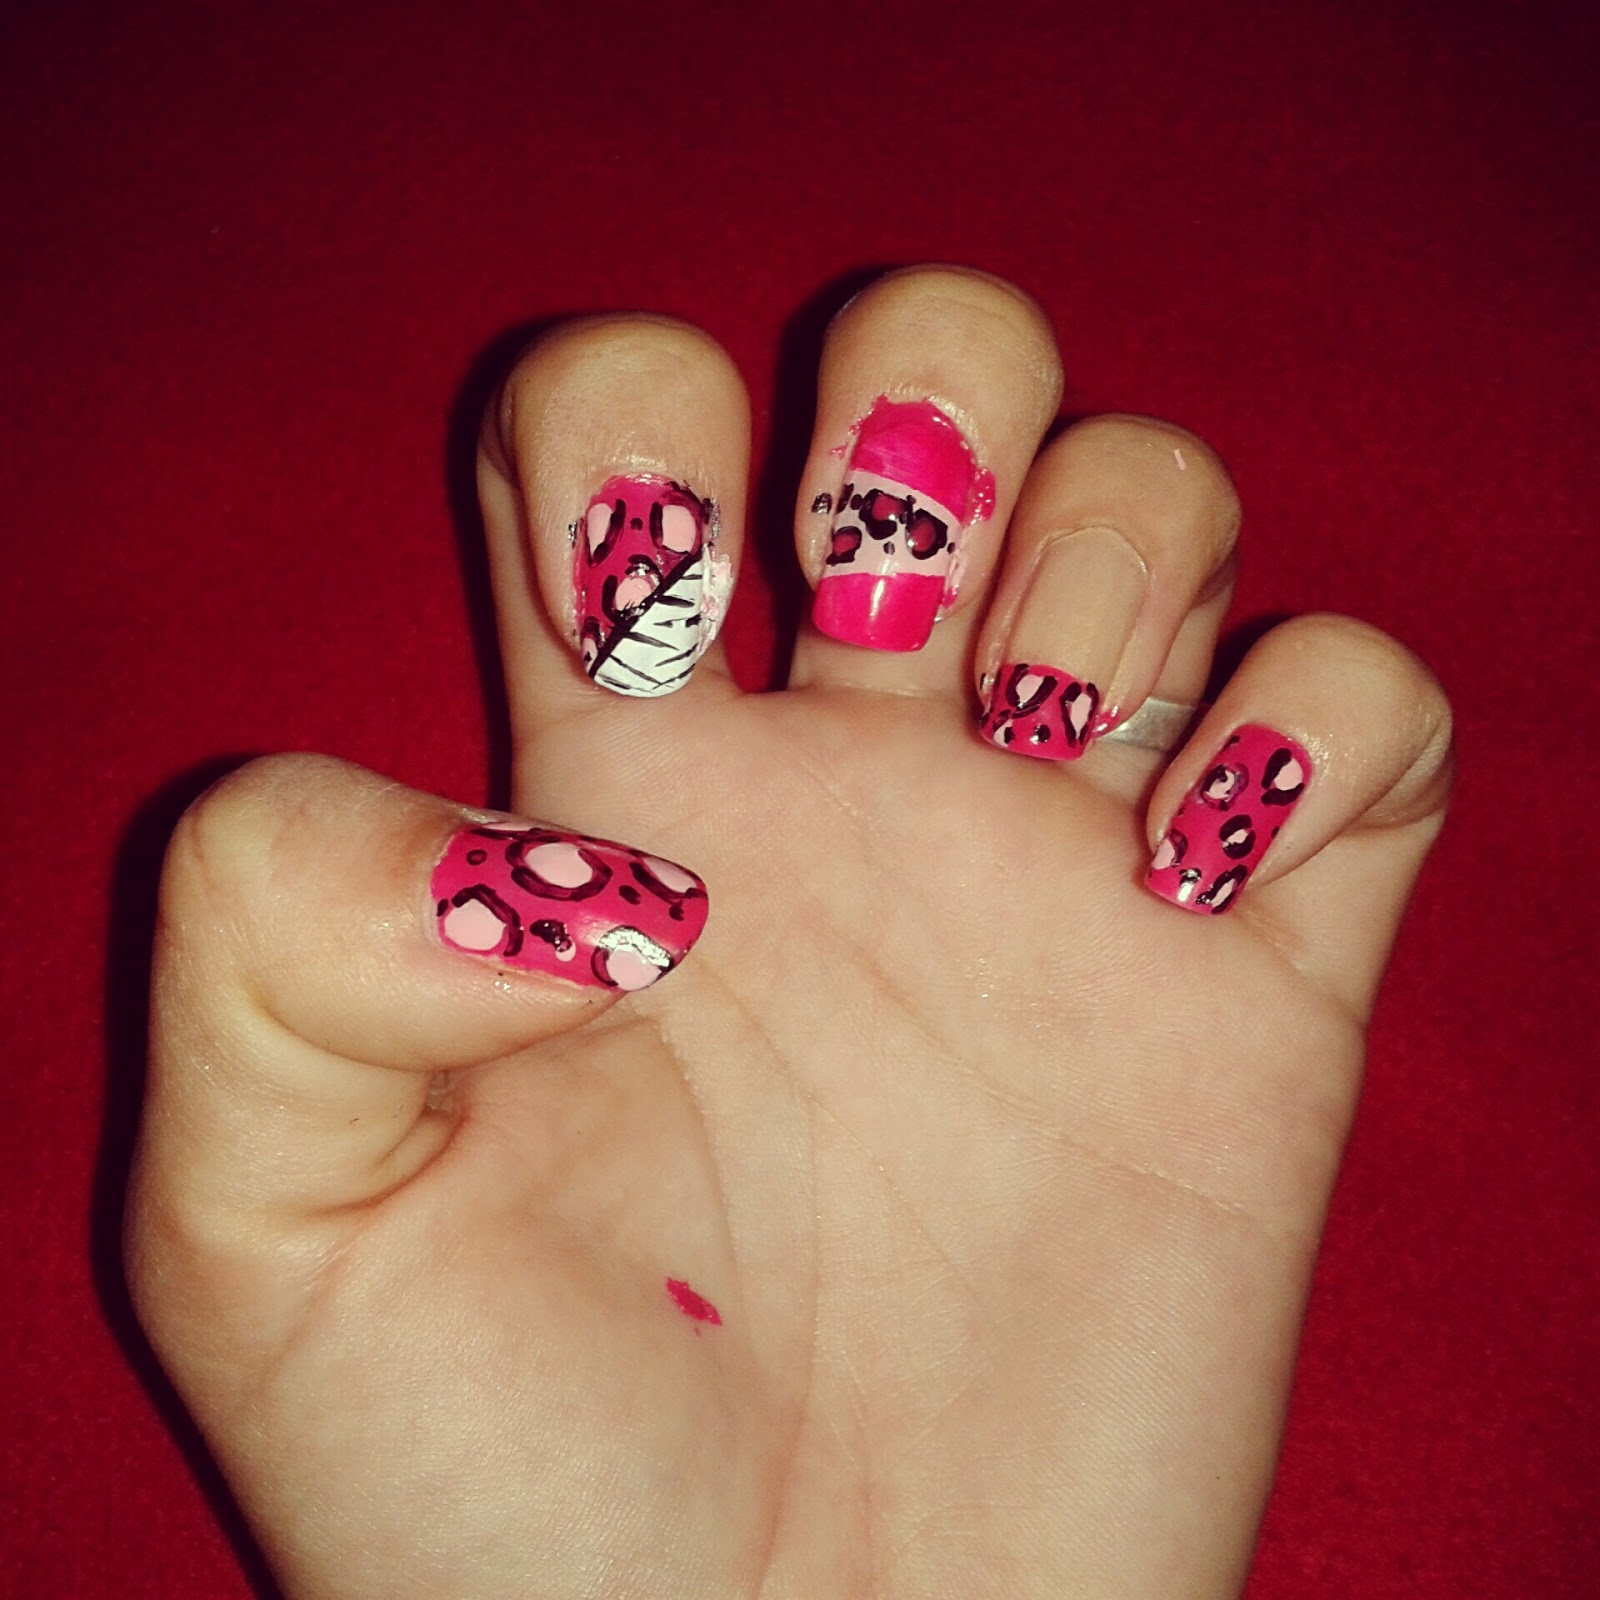 Confidencias de chicas: Decoración de uñas; animal print en rosa.